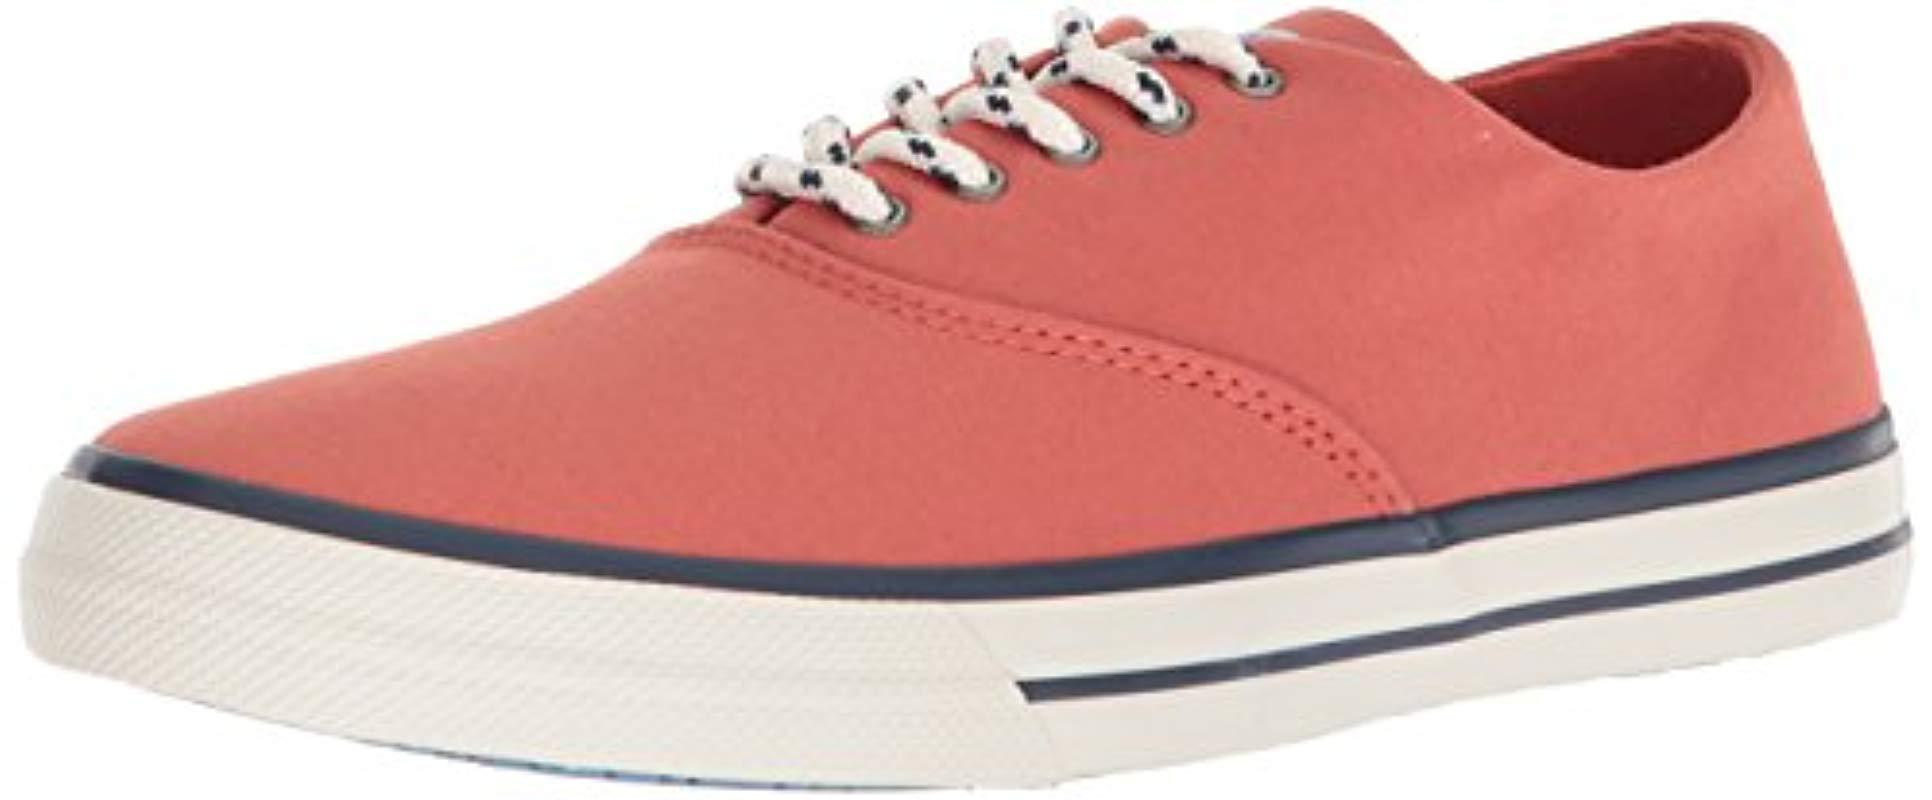 new product f5156 43786 sperry-top-sider-Red-Captains-Cvo-Nautical-Sneaker.jpeg